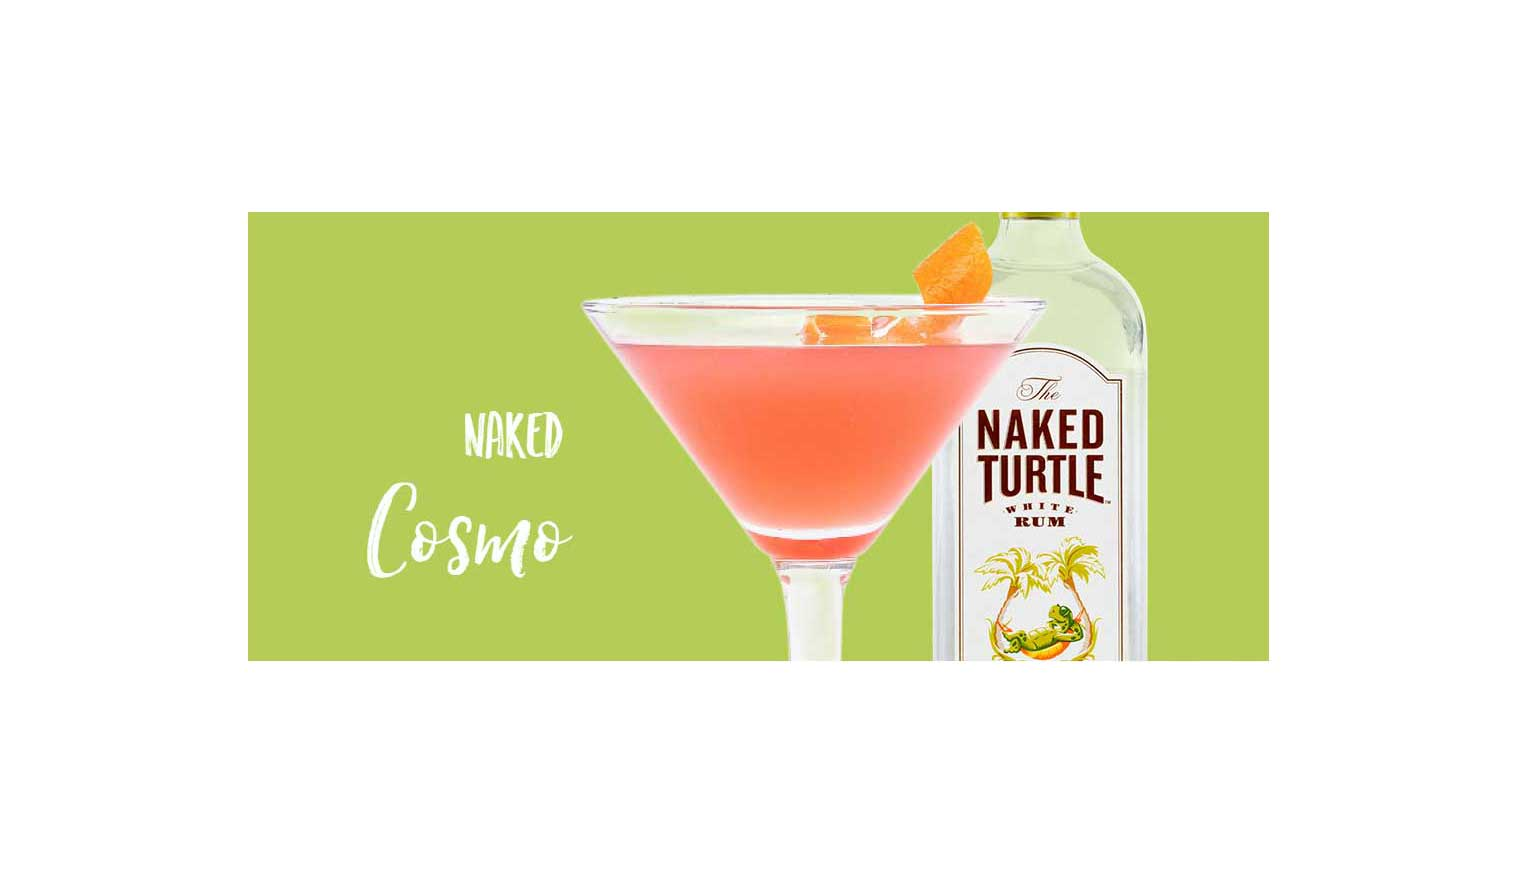 A better-than-vodka choice to help you find the cosmos within. Photo Credit: The Naked Turtle White Rum